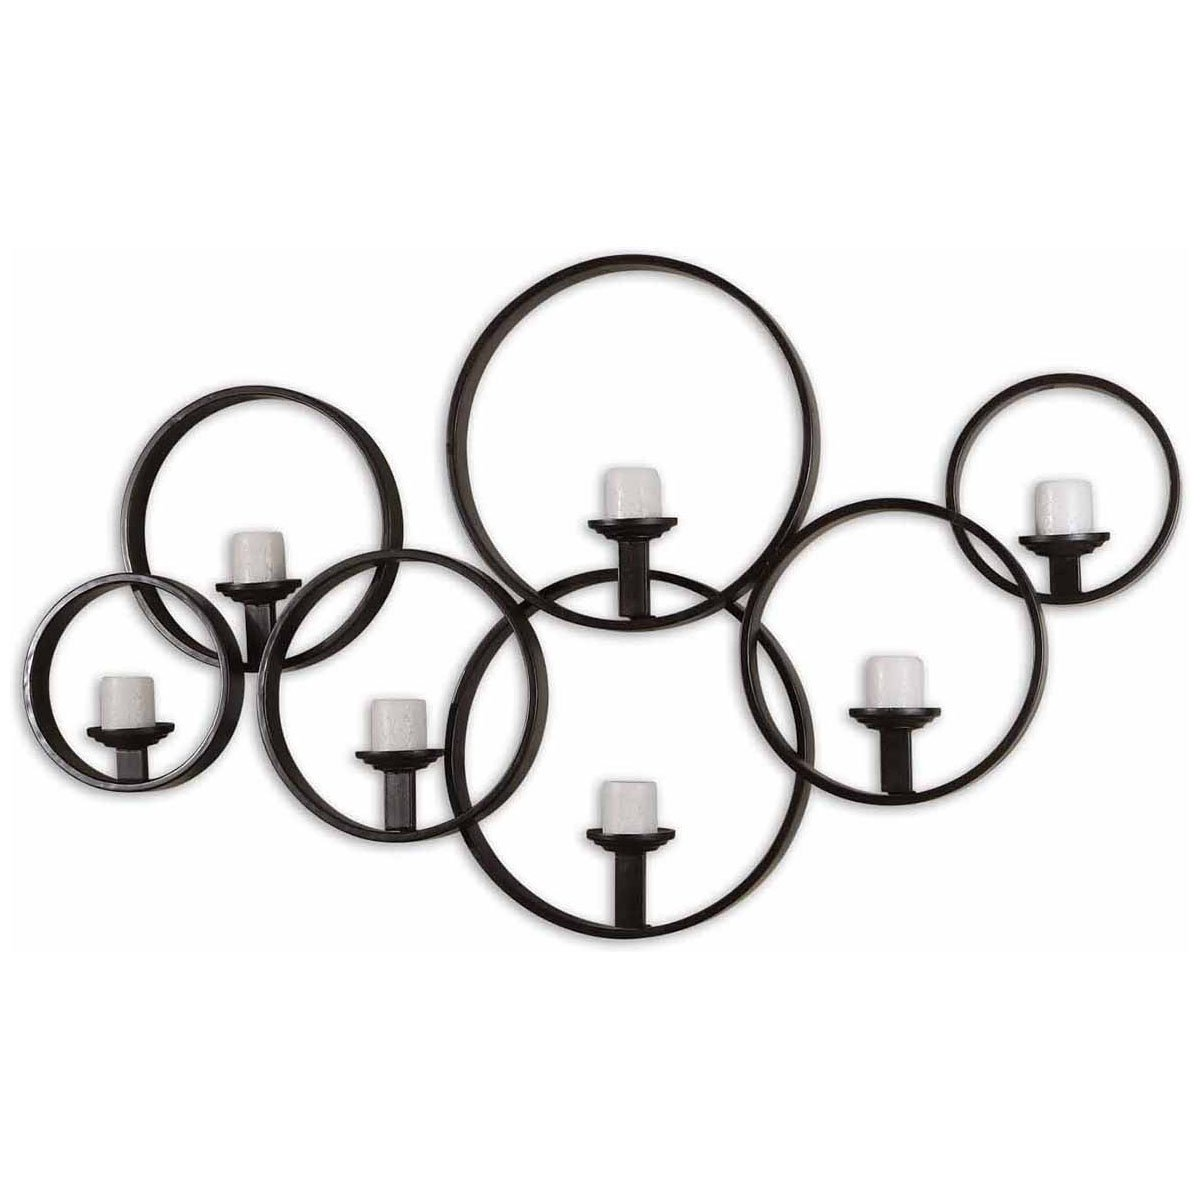 Amazon.com: Uttermost 07617 Kadoka Decorative Wall Candle Holder ...